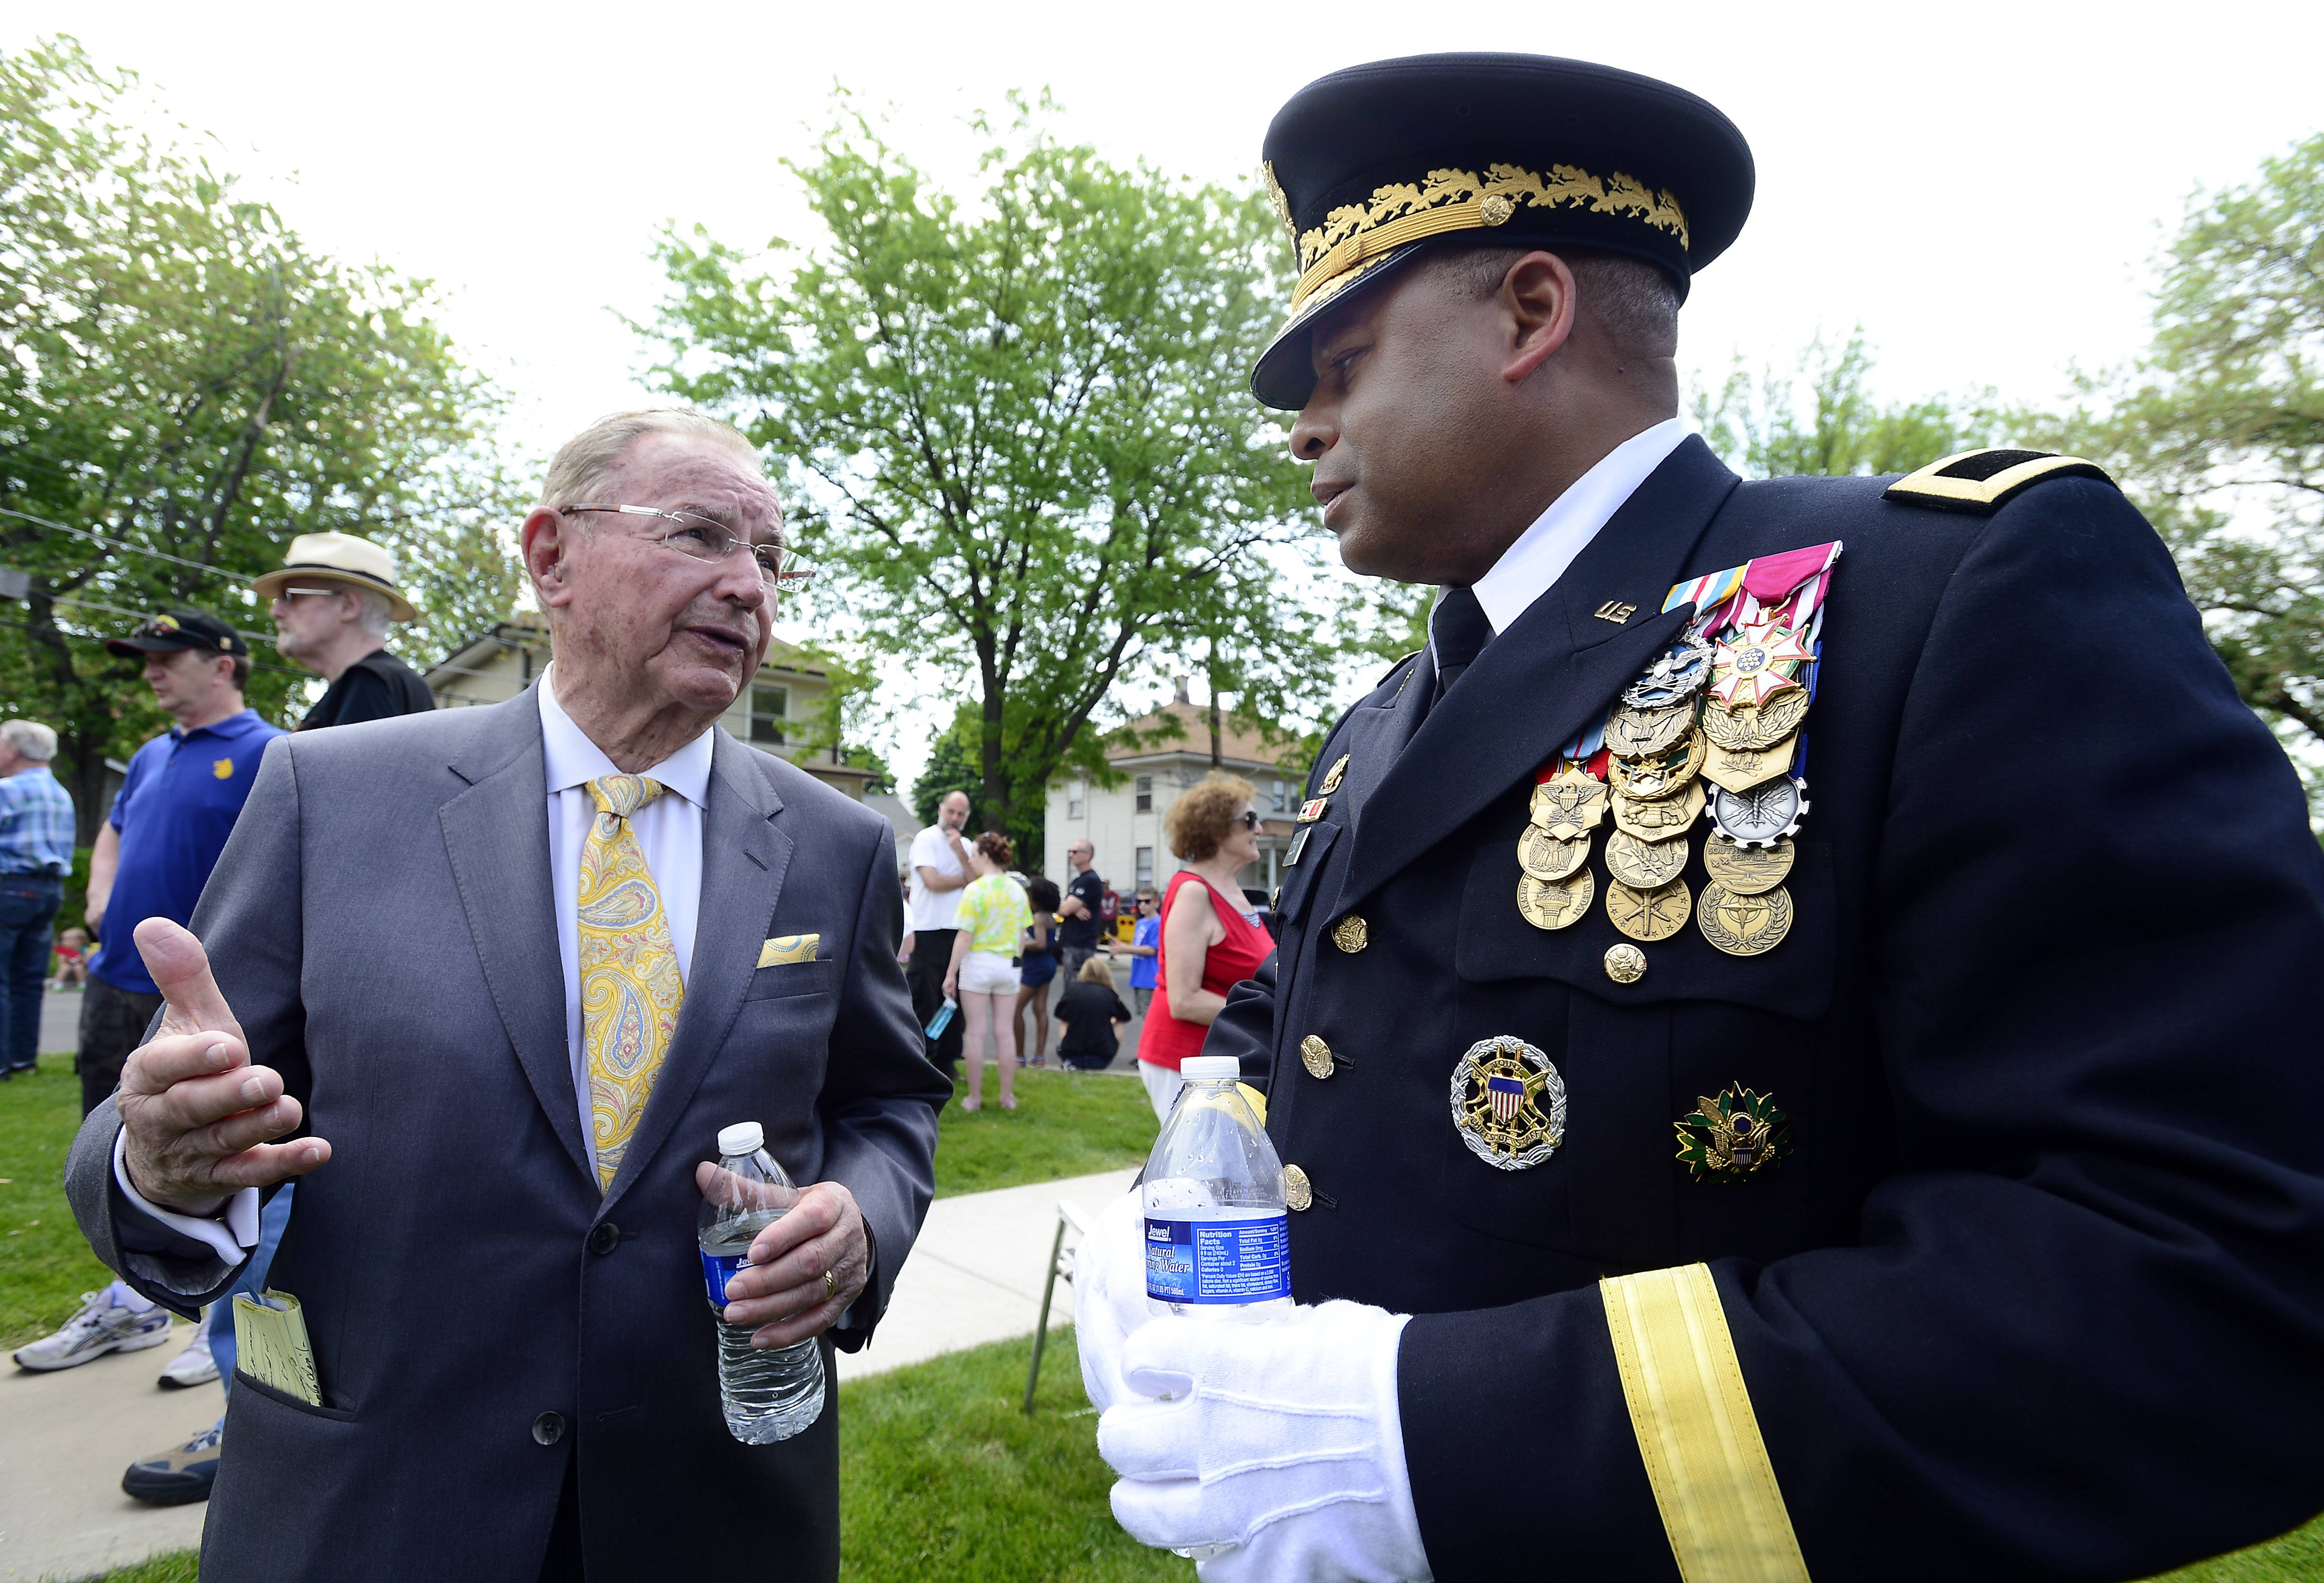 Richard Duchossois, grand marshall of the parade and World War II veteran talks Gracus Dunn, Brigadier General, U.S. Army before the start of the ceremony at the Arlington Heights Memorial Day event on Monday.